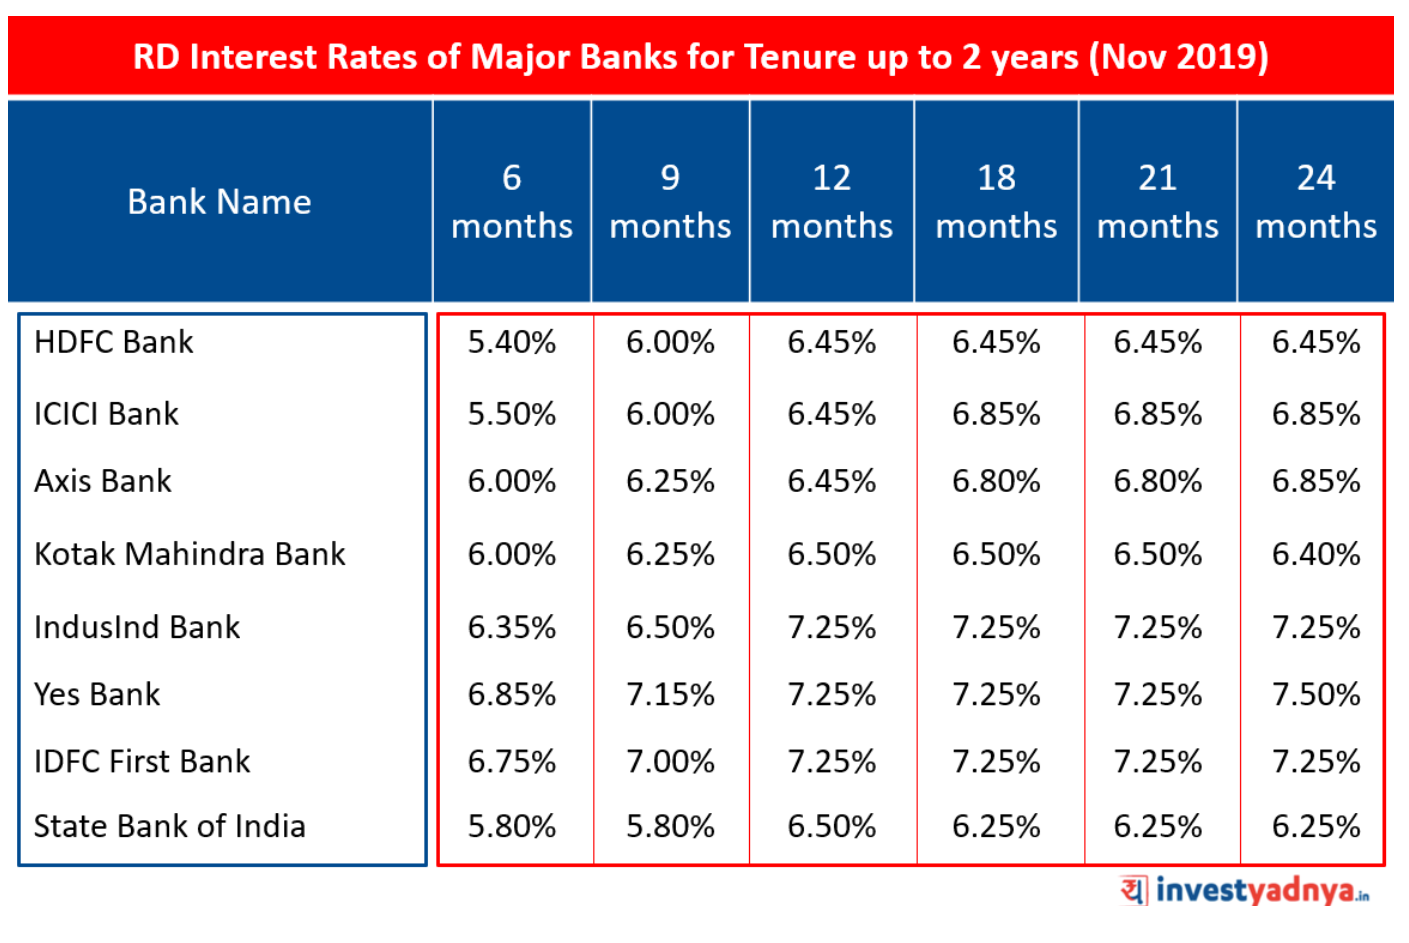 RD Interest Rates Nov 2019